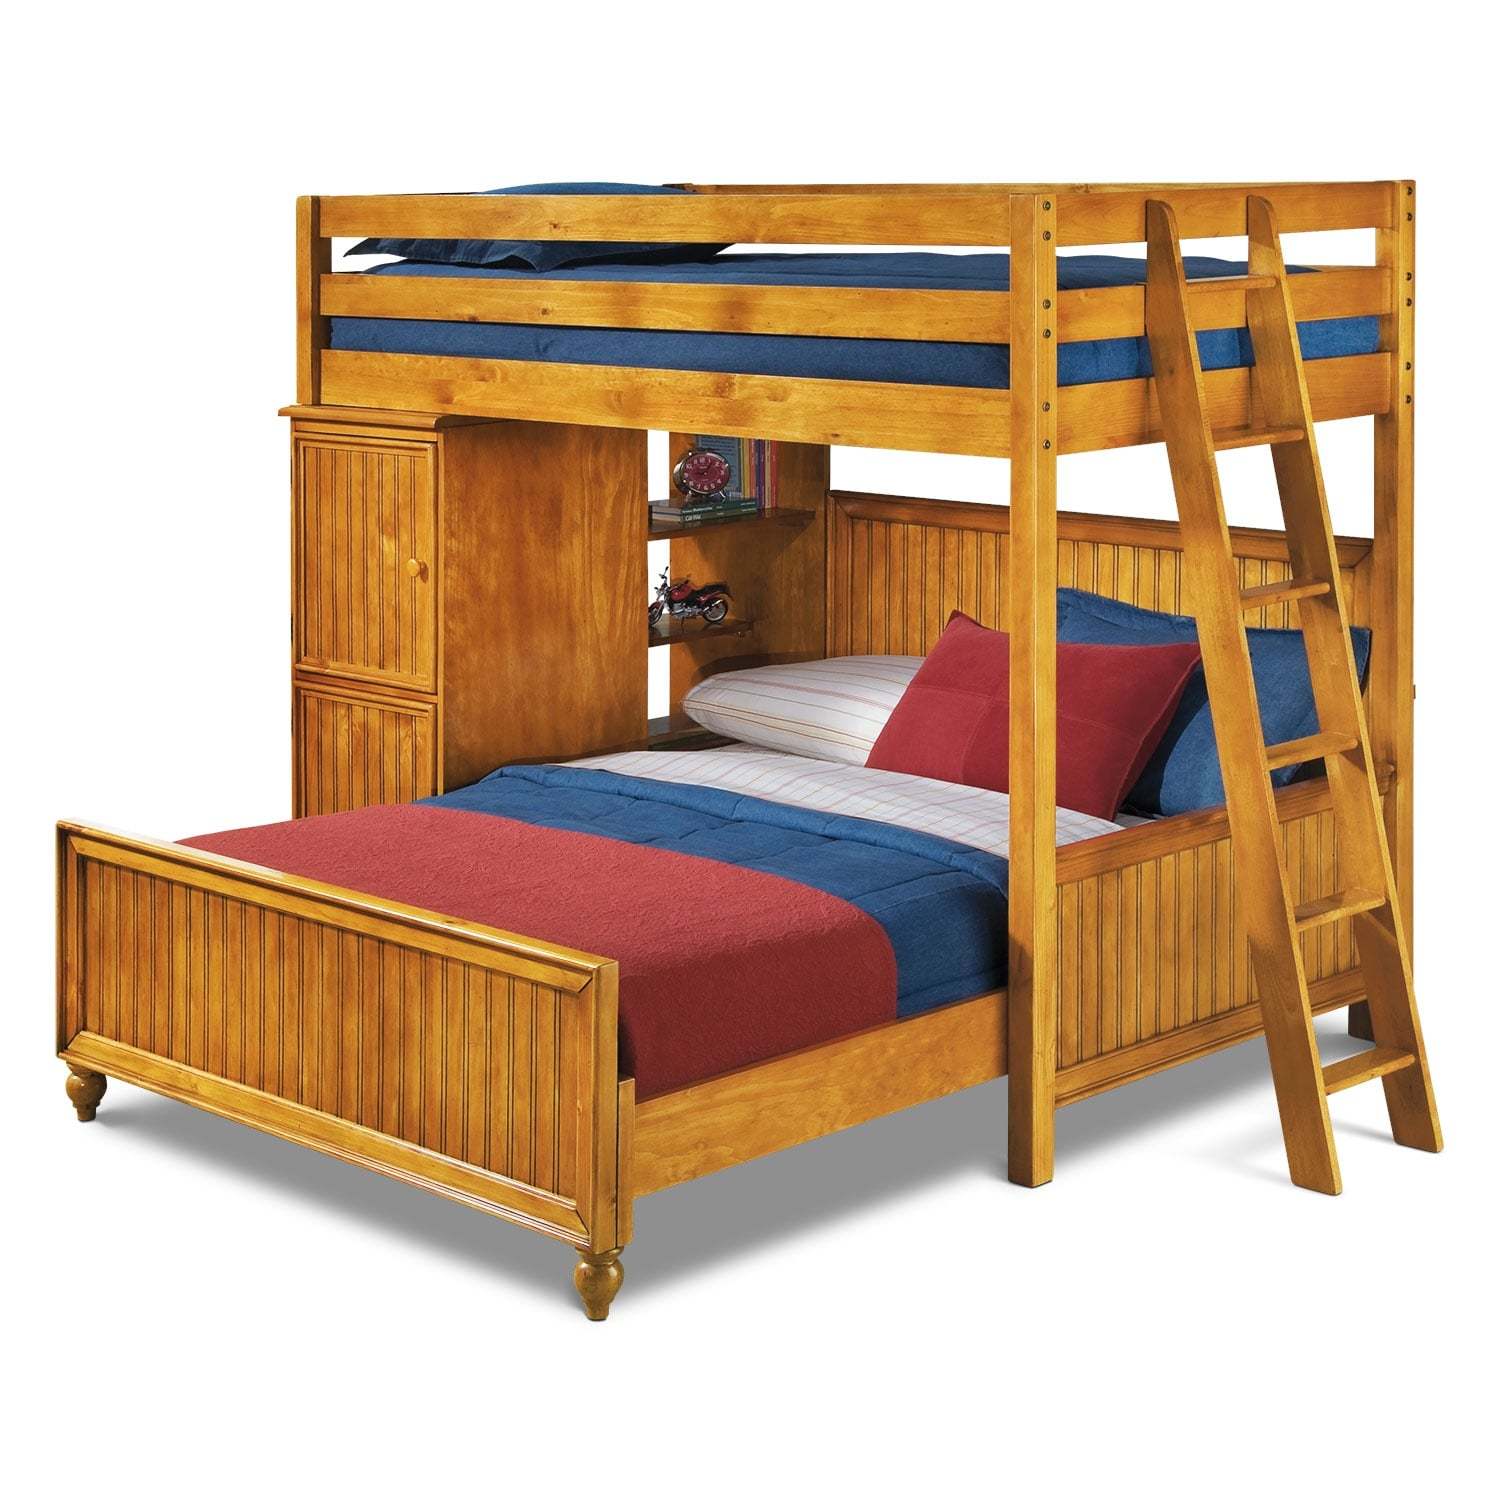 Was $999.99 Today $899.99 Colorworks Loft Bed With Full Bed   Honey Pine